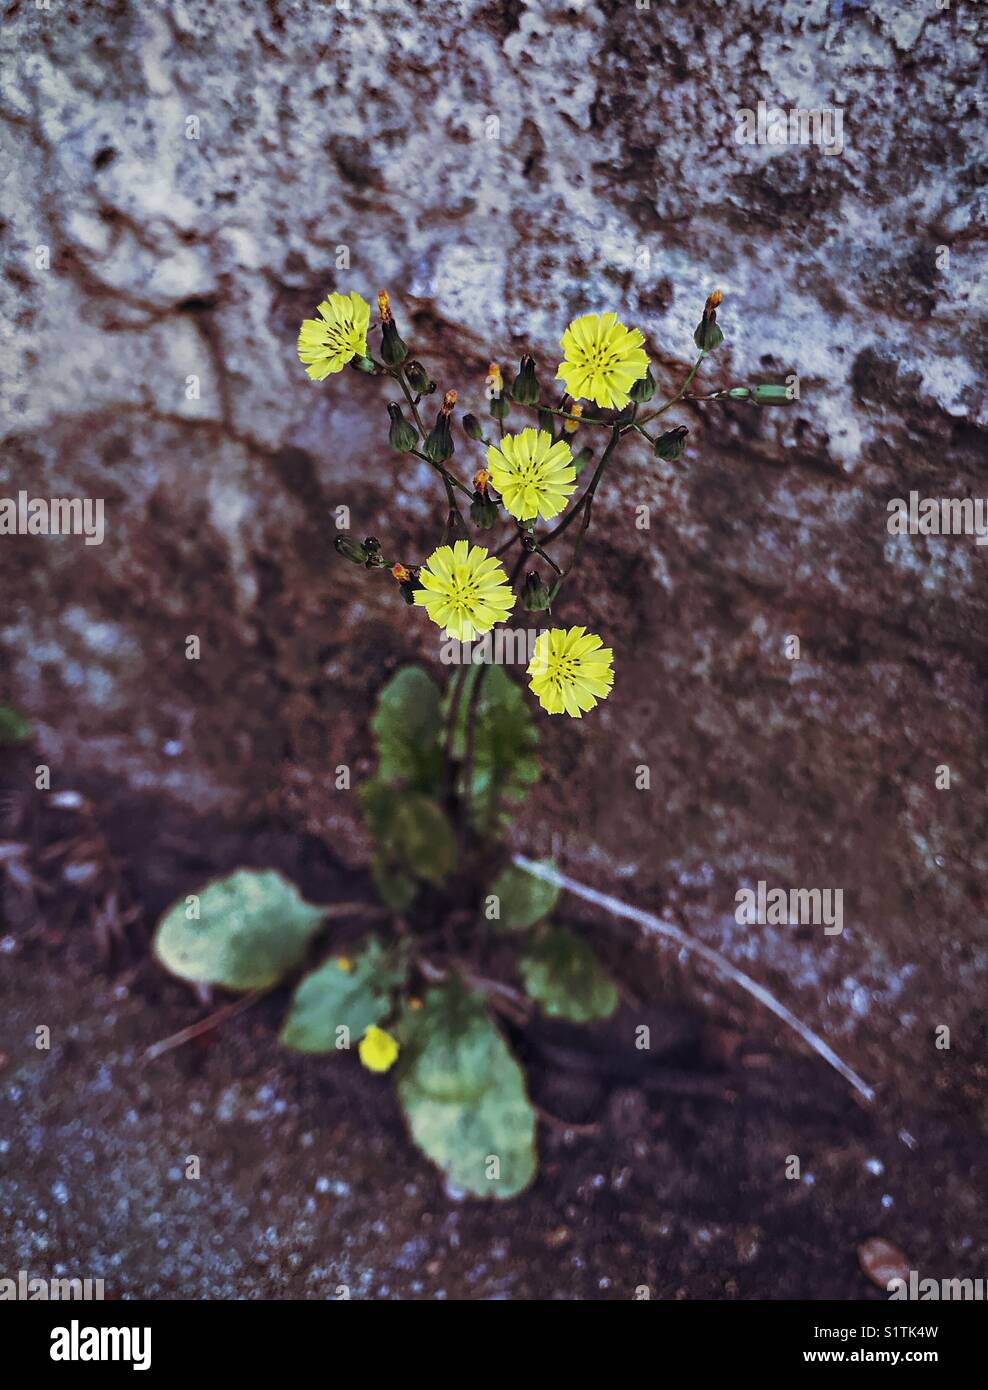 Yellow Flowered Weed Against A Rough Stone Wall Stock Photo